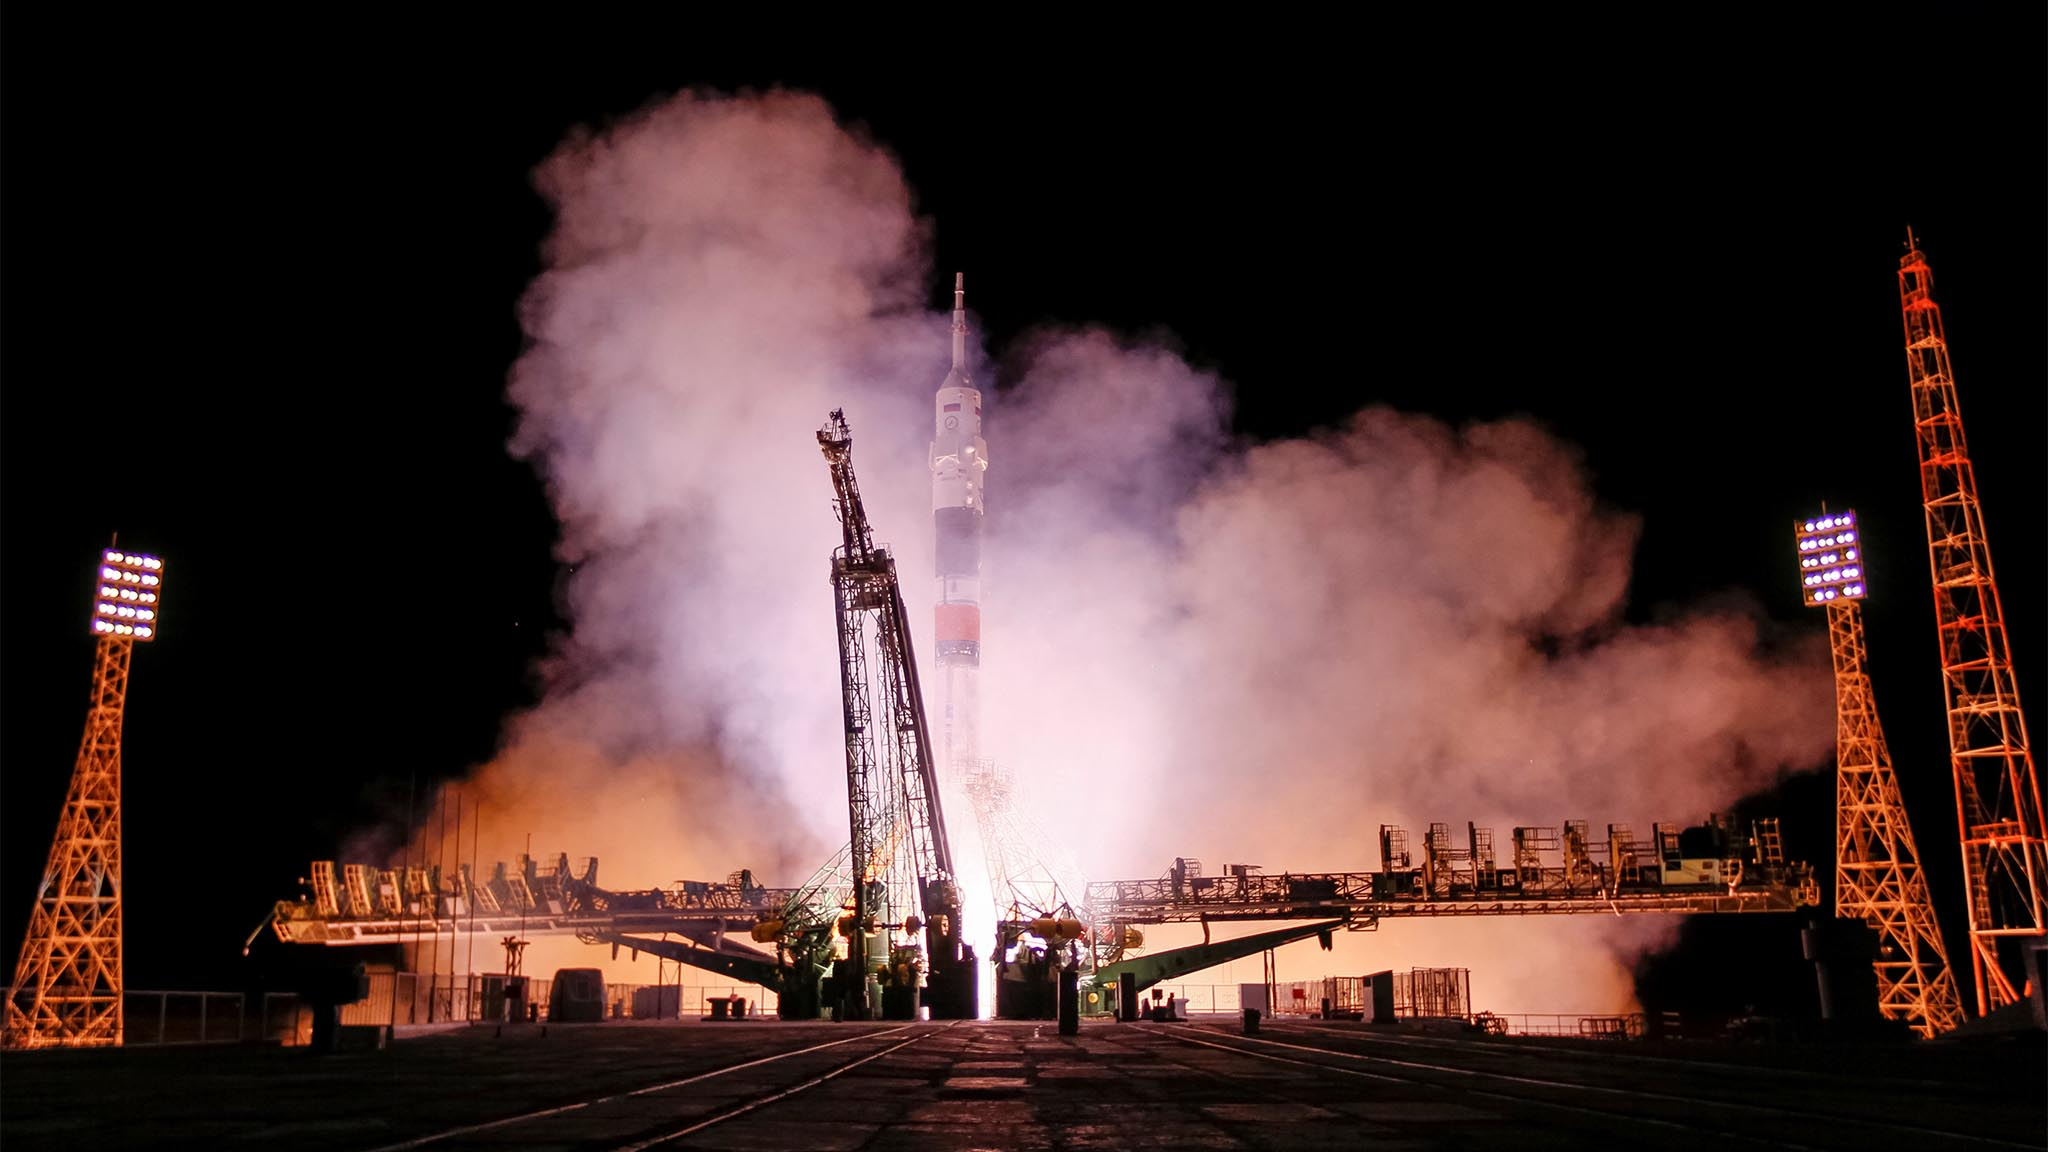 The Soyuz MS-03 spacecraft carrying the crew of Whitson of the U.S., Novitskiy of Russia and Pesquet of France blasts off to the International Space Station (ISS) from the launchpad at the Baikonur cosmodrome, Kazakhstan